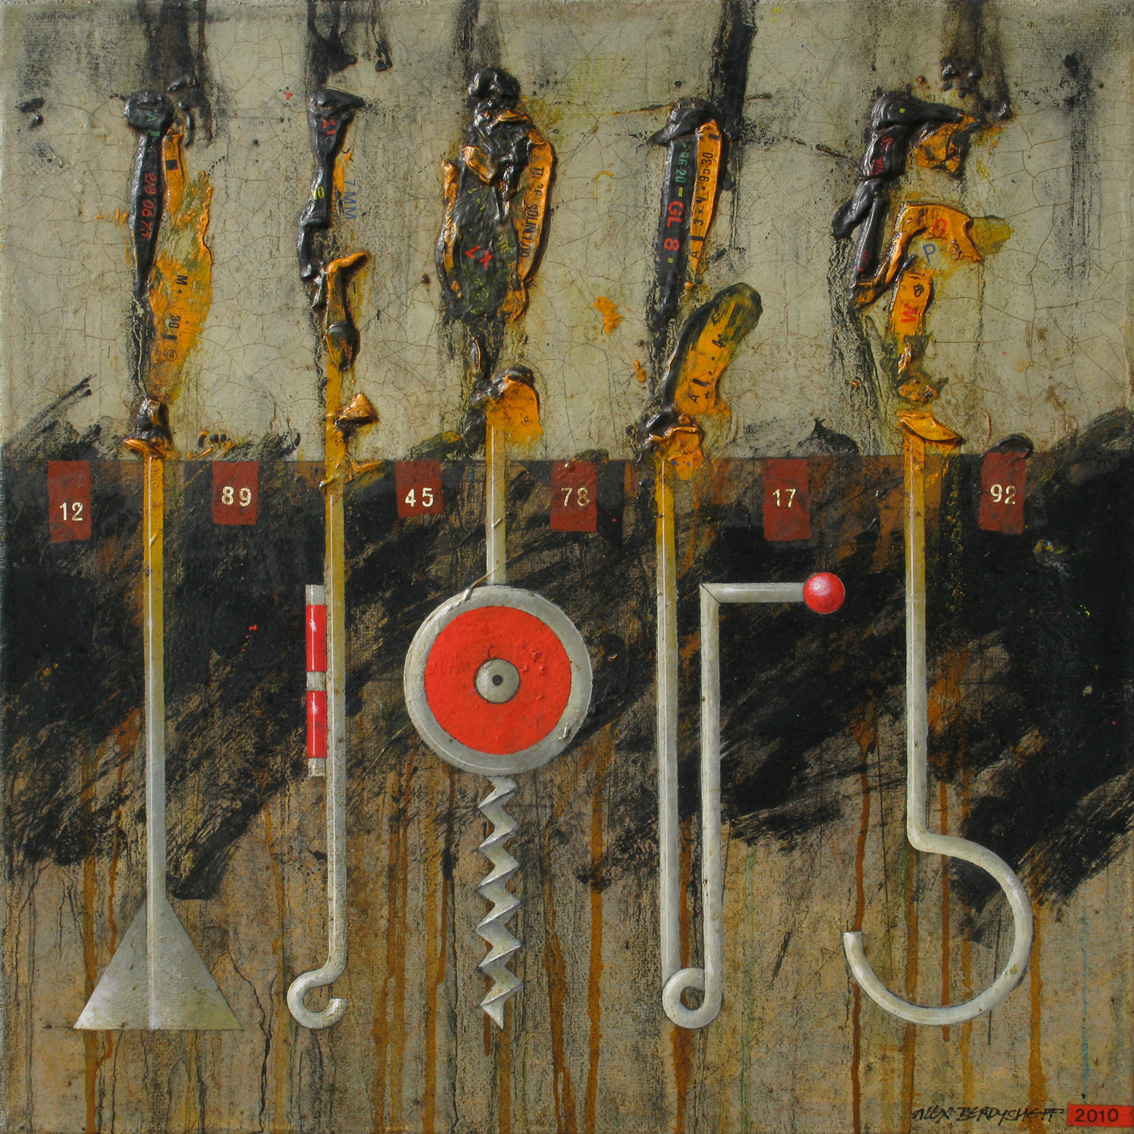 TOOLBOX II, OIL ON CANVAS, 46X46СМ, 2010